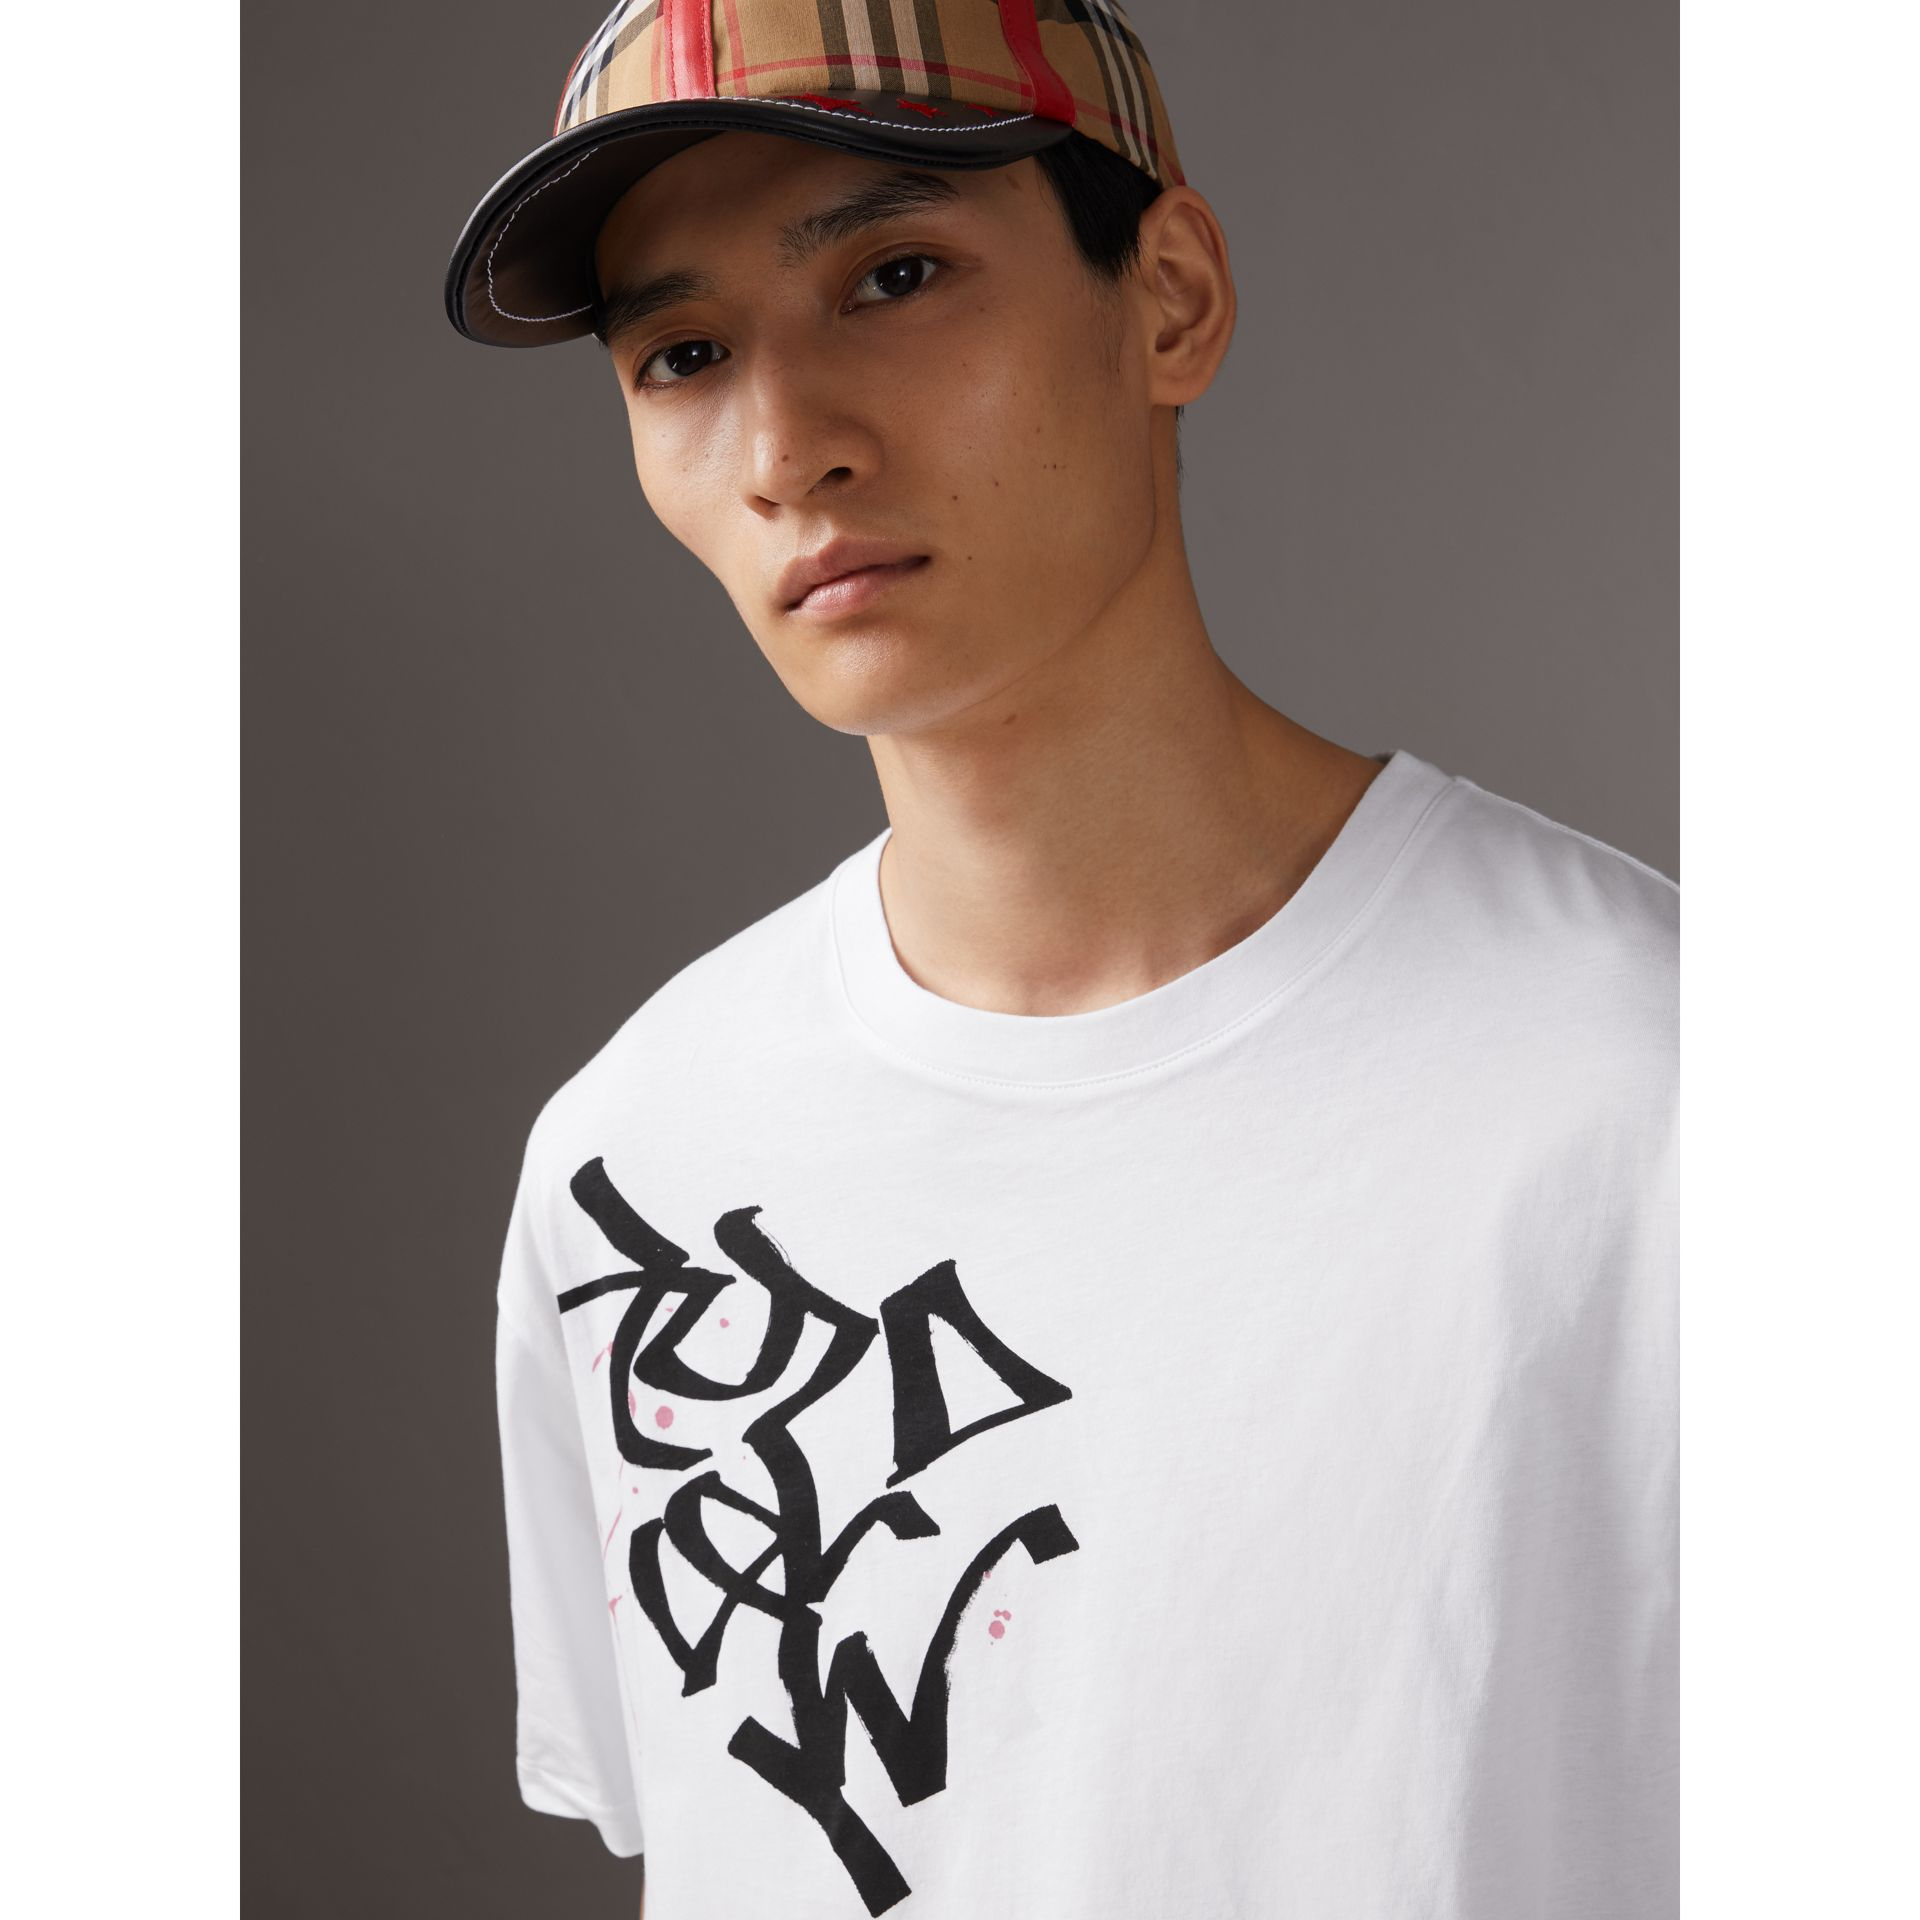 Burberry x Kris Wu Printed Cotton T-shirt in White - Men | Burberry United States - gallery image 1